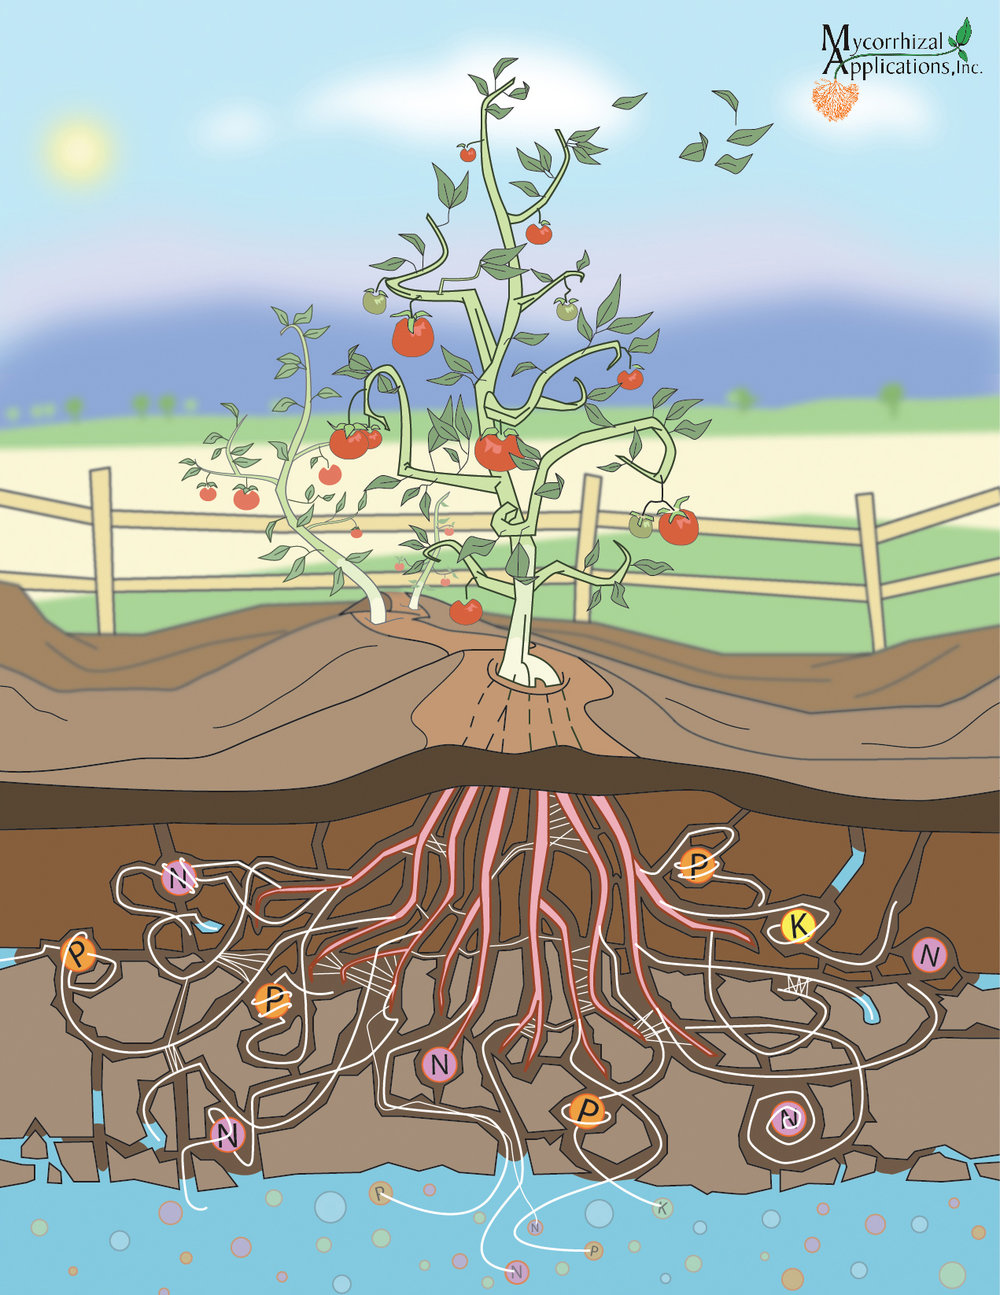 Tomato Plant Root System.jpg